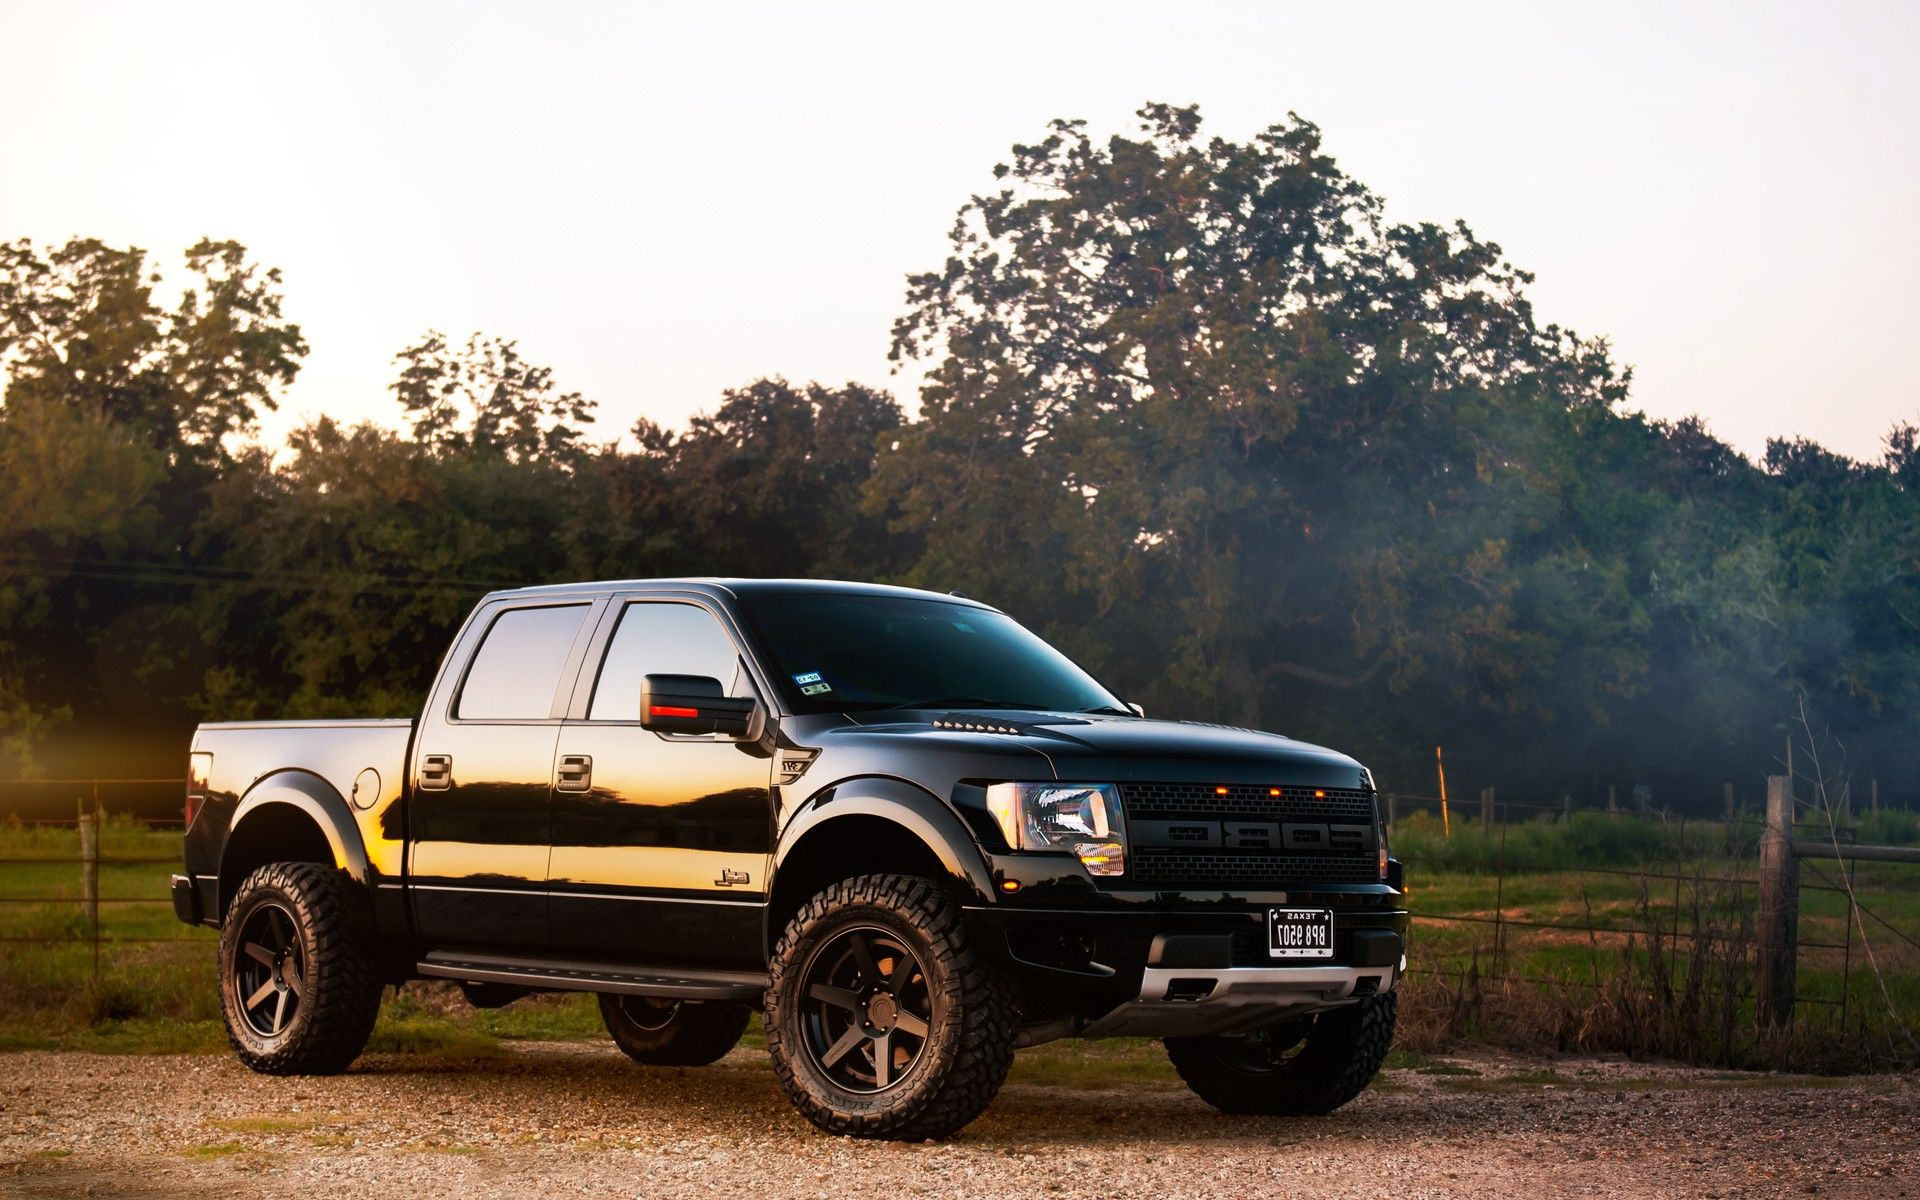 Ford F150 Ford Cars With Images Ford F150 F150 Ford